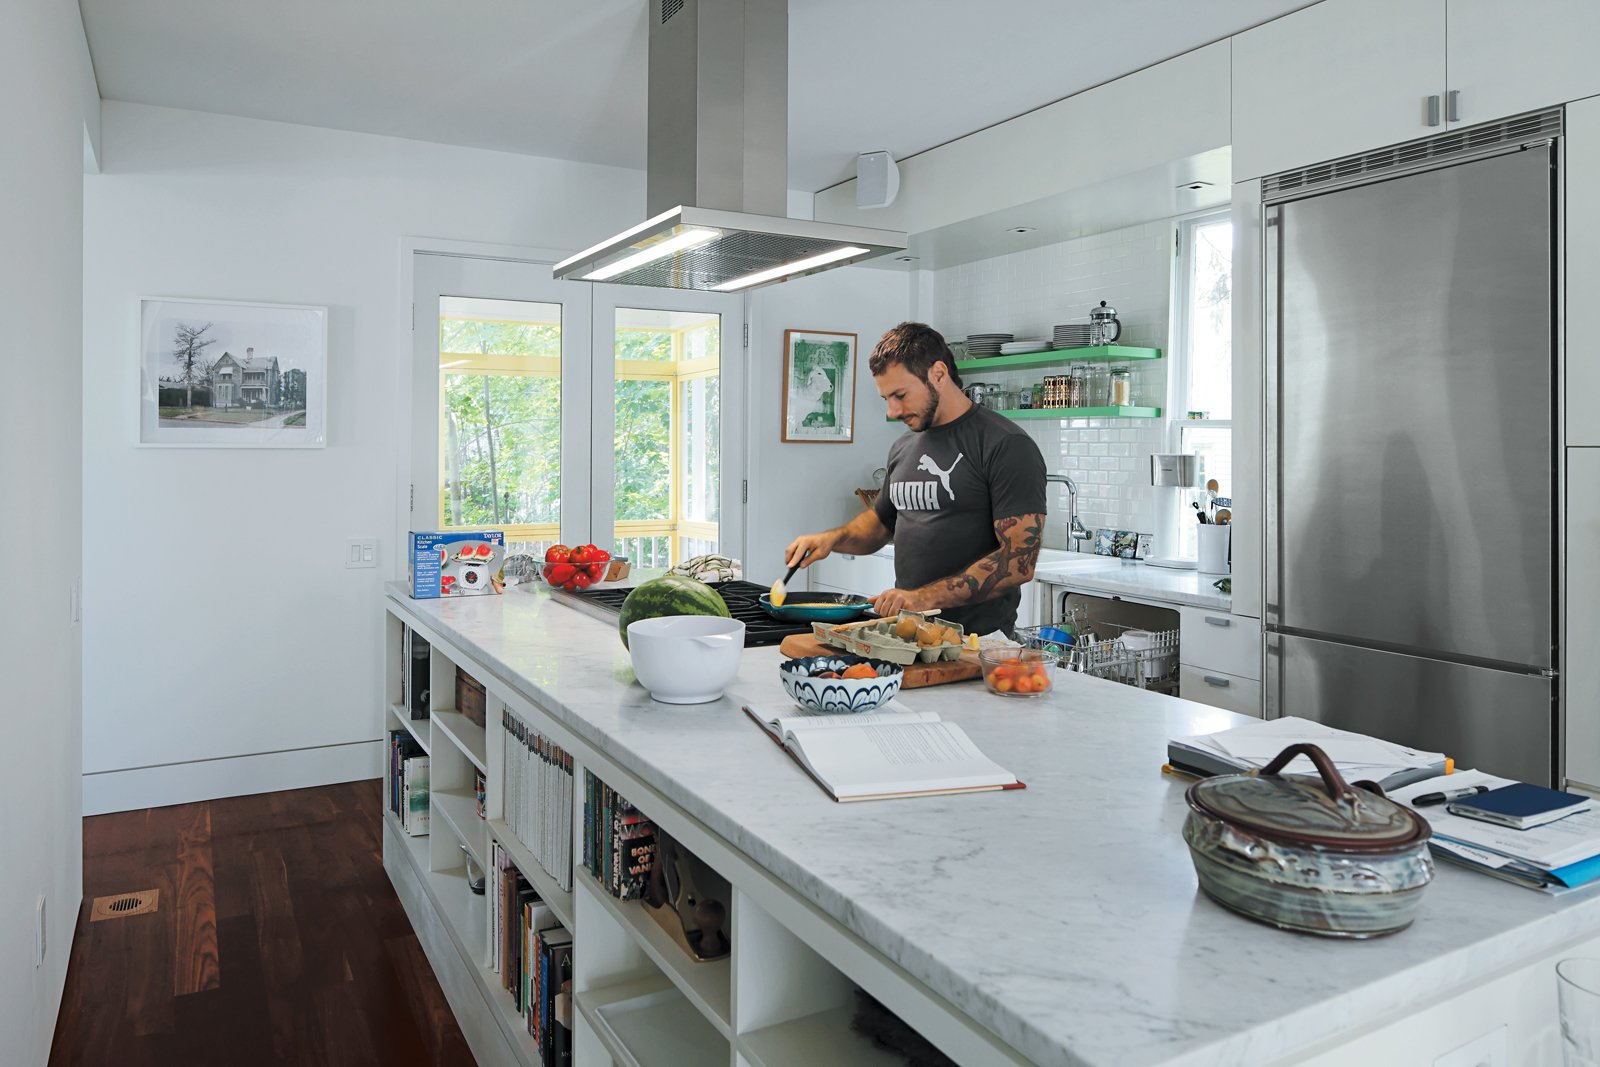 To accommodate his passion for cooking, Renaldi insisted on the long Carrara marble countertop, a niche for cookware, and ultra-contemporary appliances. Tagged: Kitchen, Marble Counter, Dark Hardwood Floor, Refrigerator, and Range.  Photo 6 of 11 in An 1850 schoolhouse in Milford, Pennsylvania